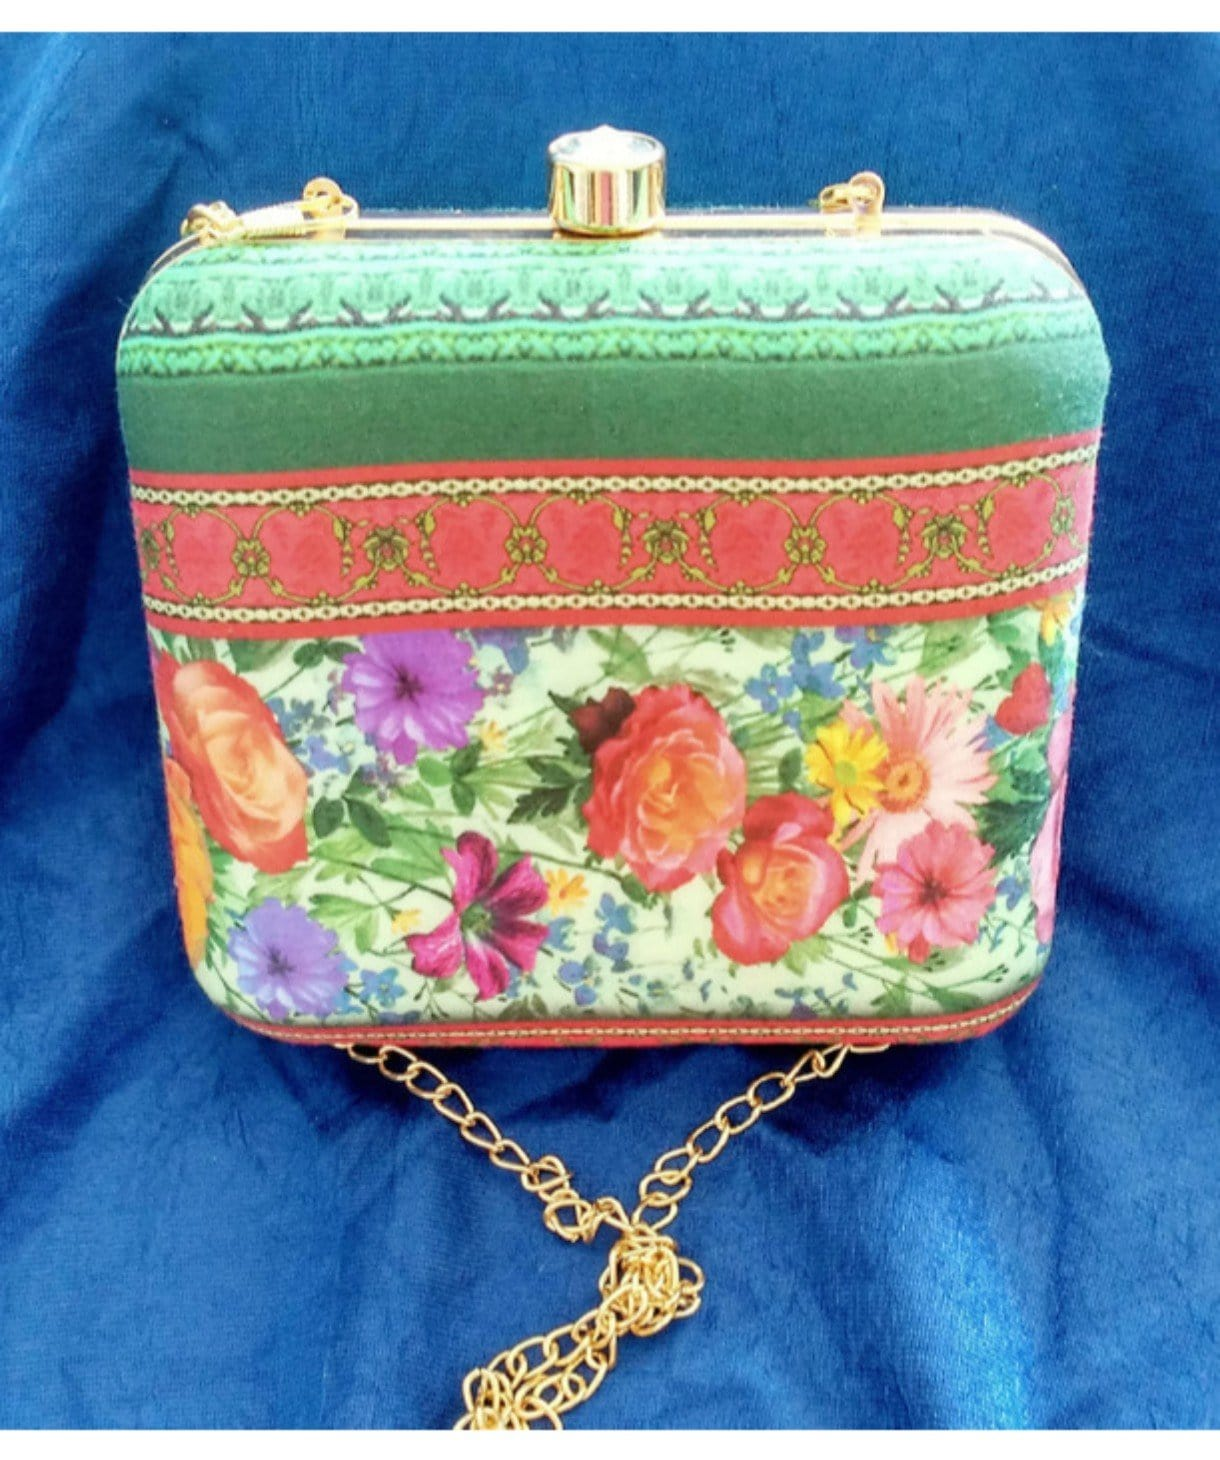 Silk Route Floral Box Clutch - Uptownie